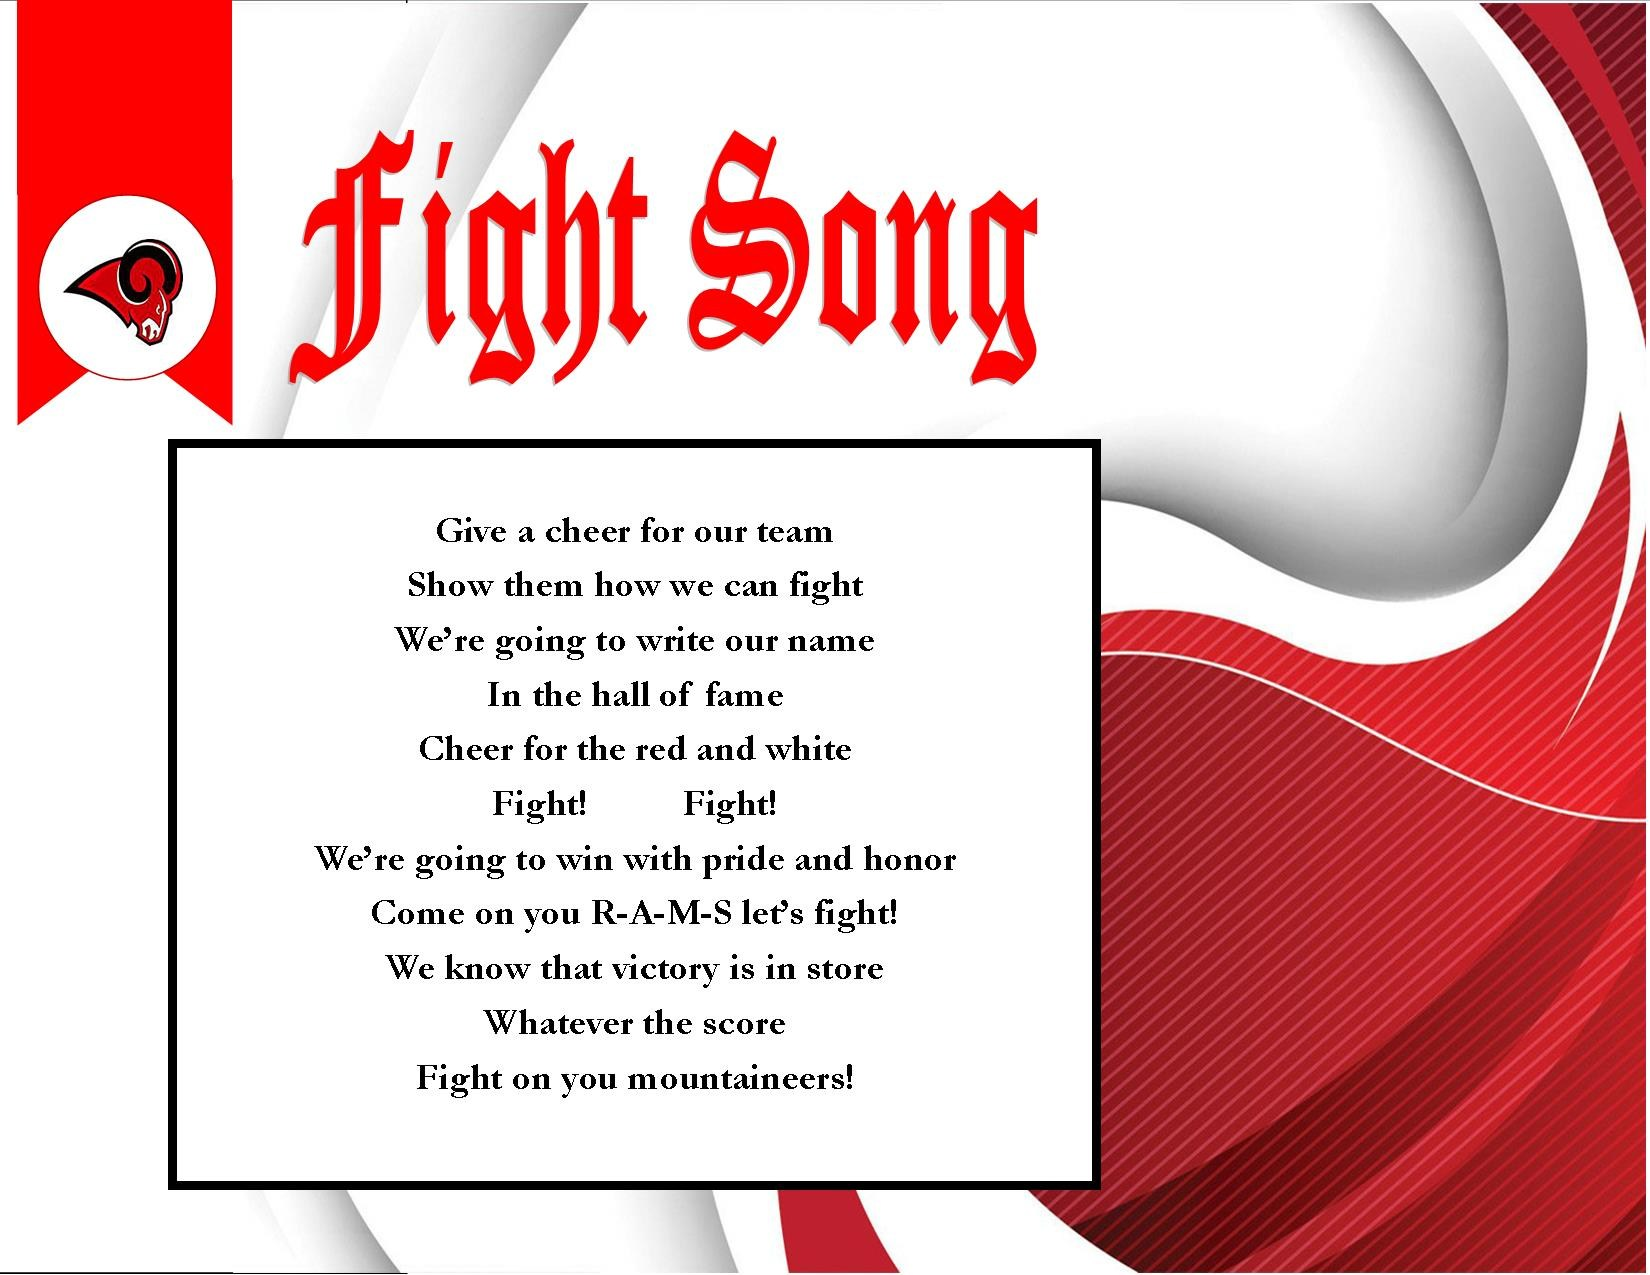 MWISD Fight Song